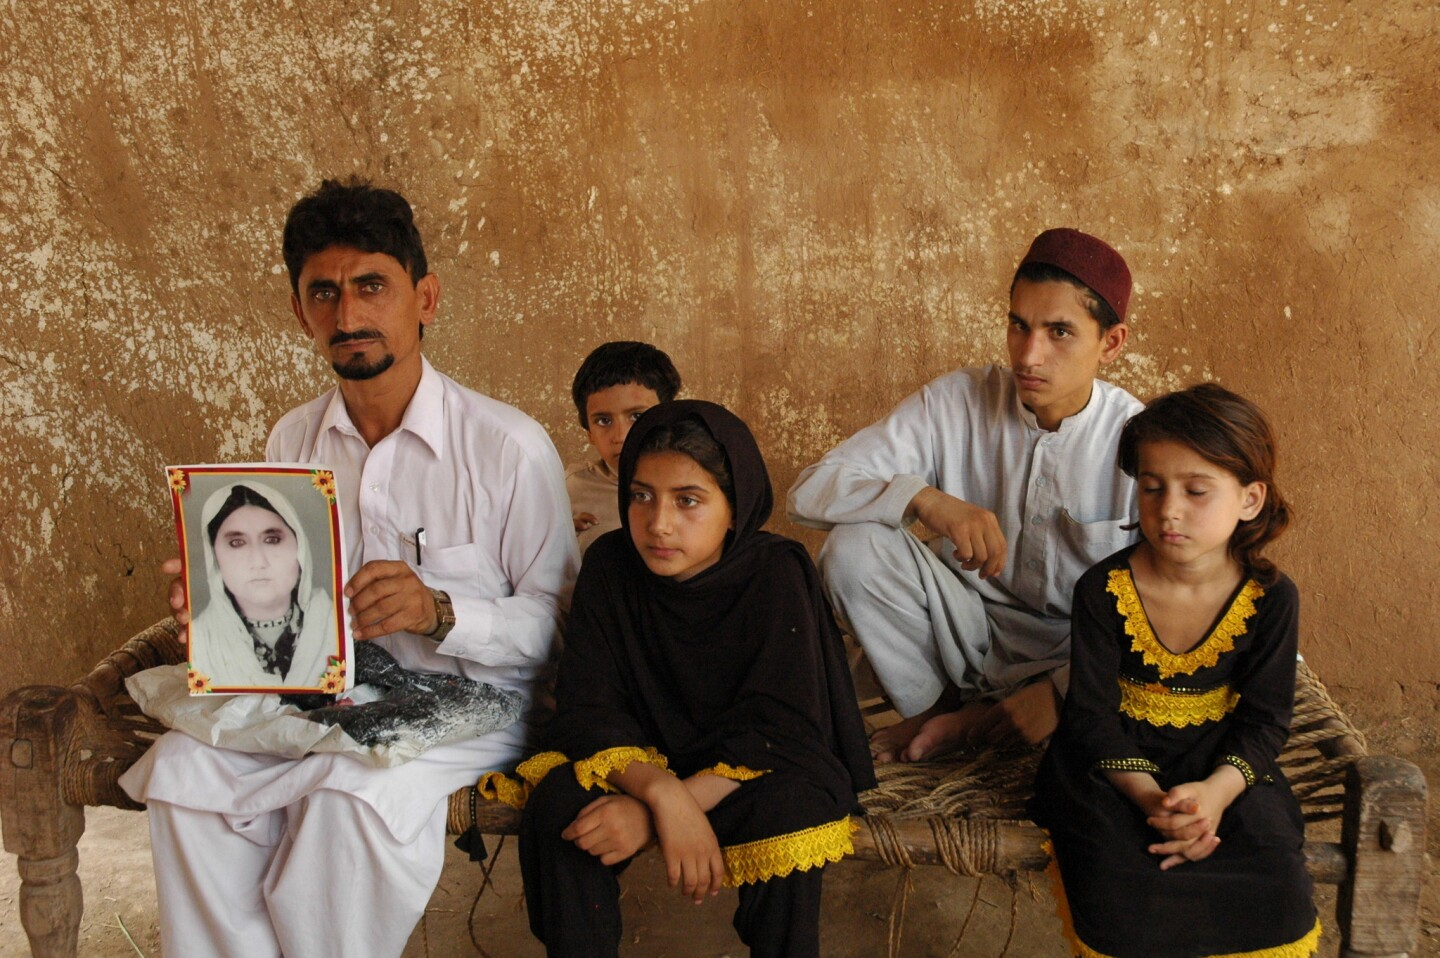 """Rafeequl Rehman sits with his children, holding a photograph of his mother, Mamana Bibi, who he says was killed in a U.S. drone strike in Pakistan last year. """"If I get some money I will get a lawyer and fight for my right to get justice from the world,"""" Rehman told Amnesty International. """"I am waiting for my justice."""""""